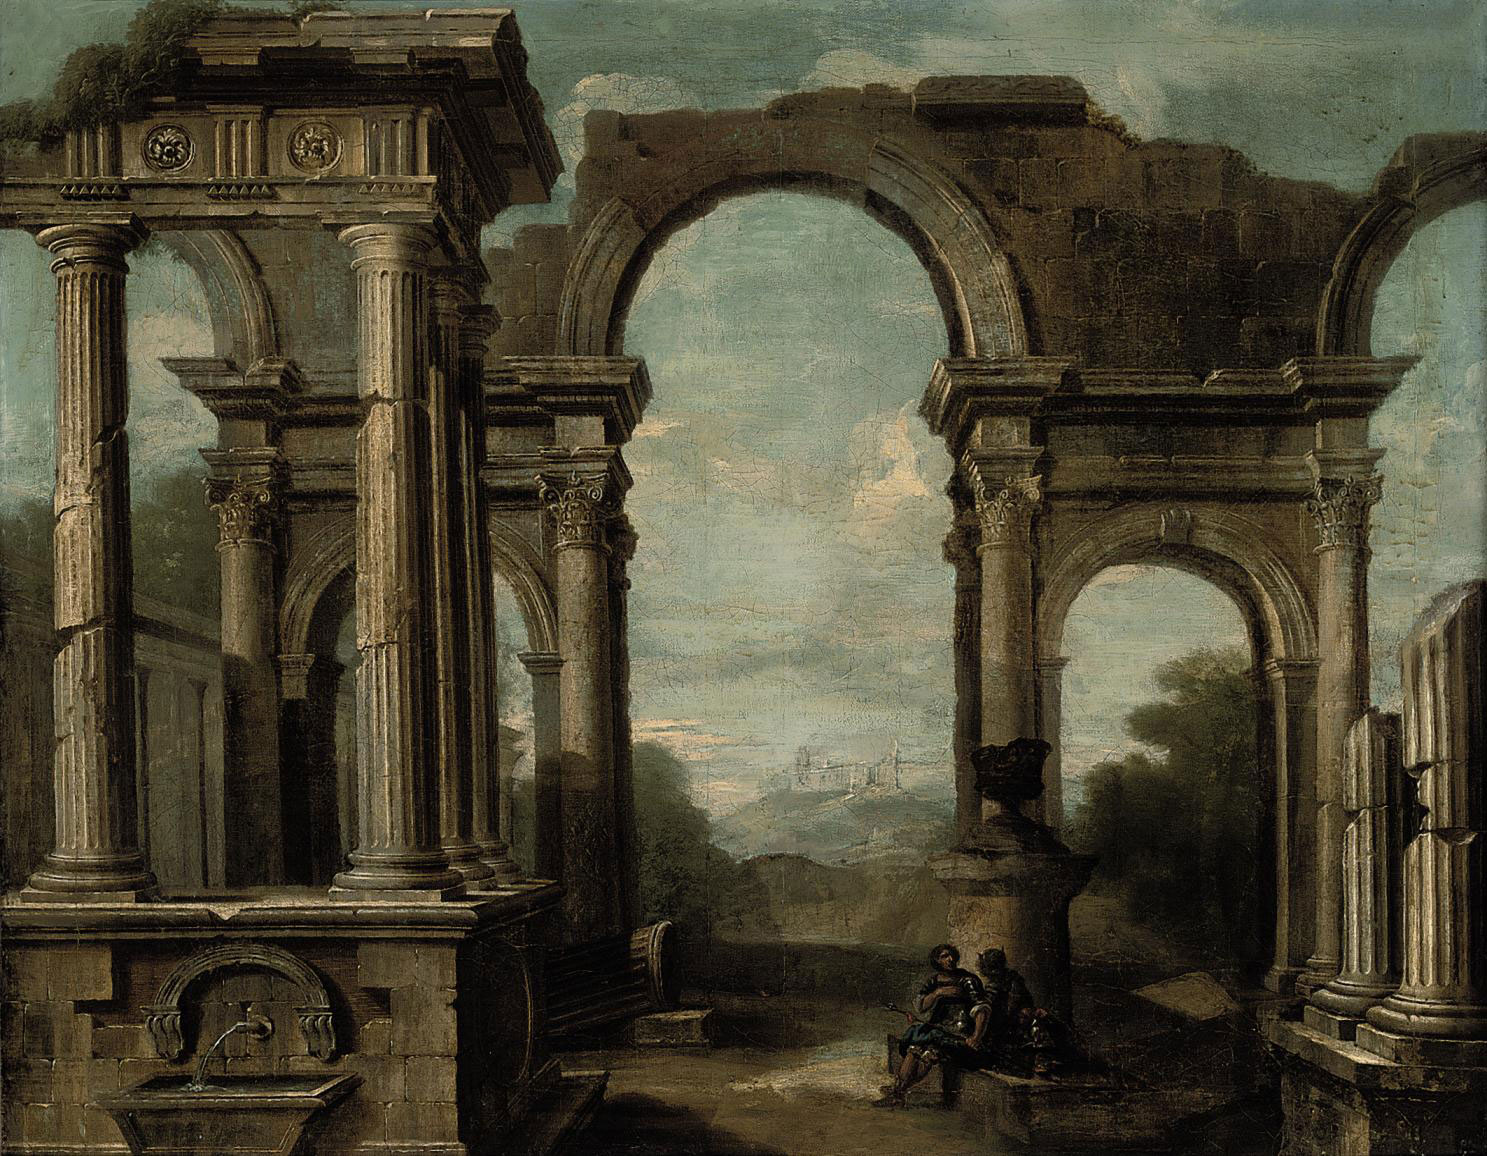 An architectural capriccio with figures beneath an arch